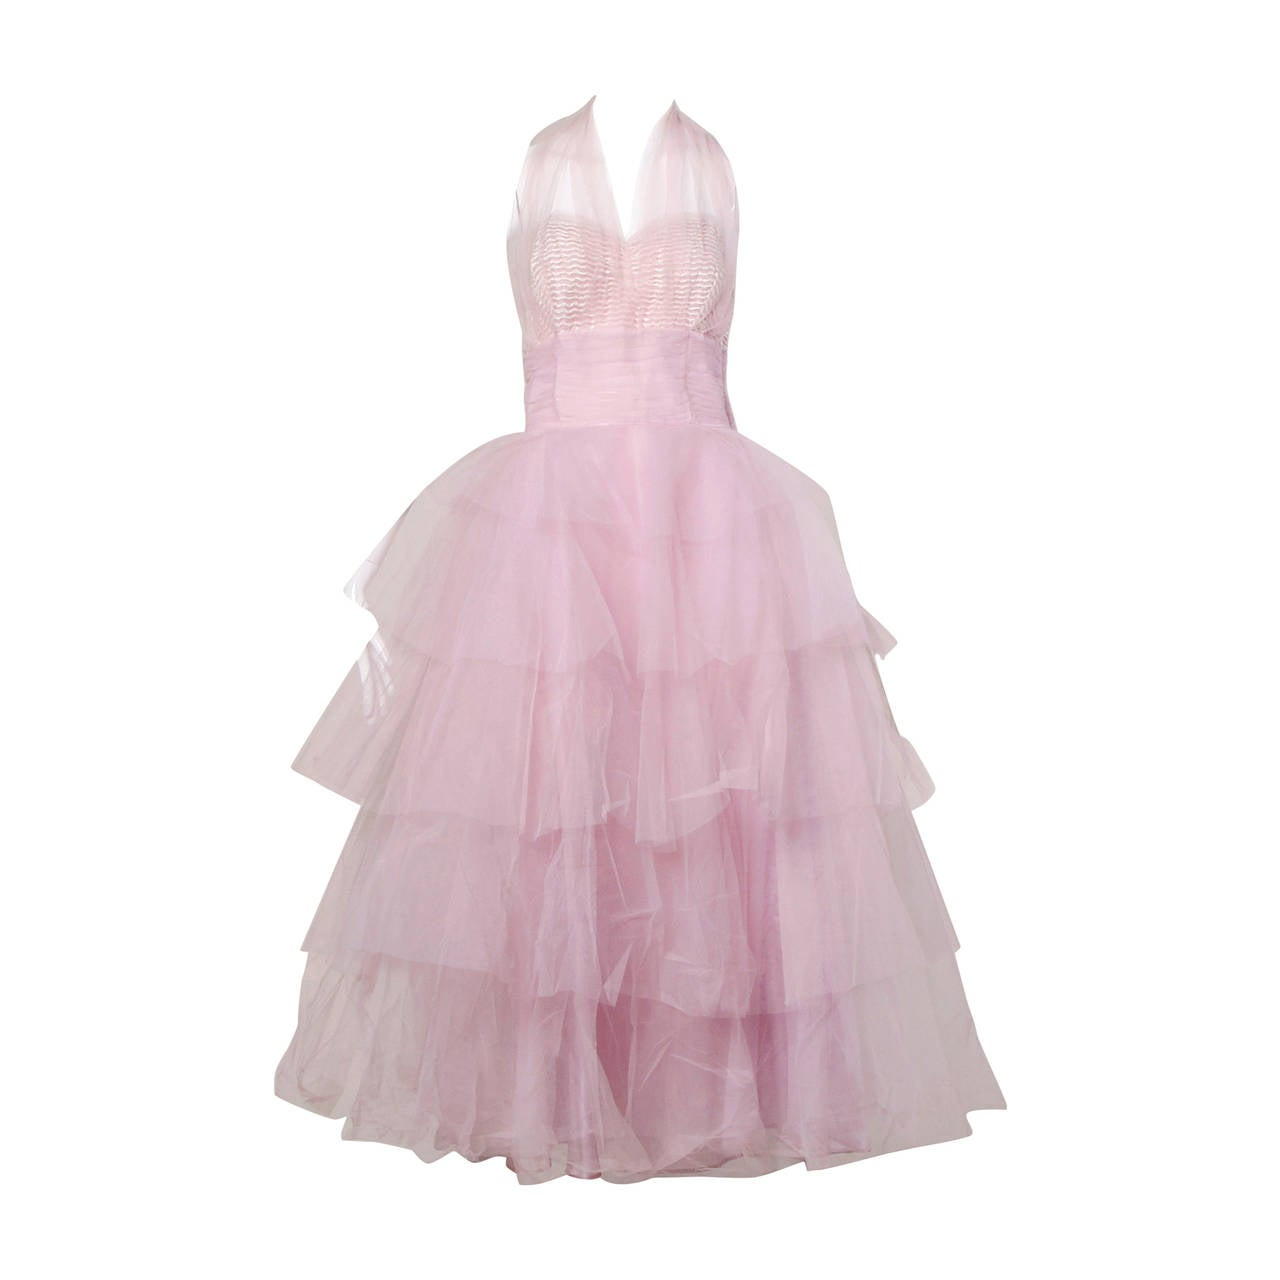 1950s Vintage Tiered Tulle Formal Cupcake Dress 1